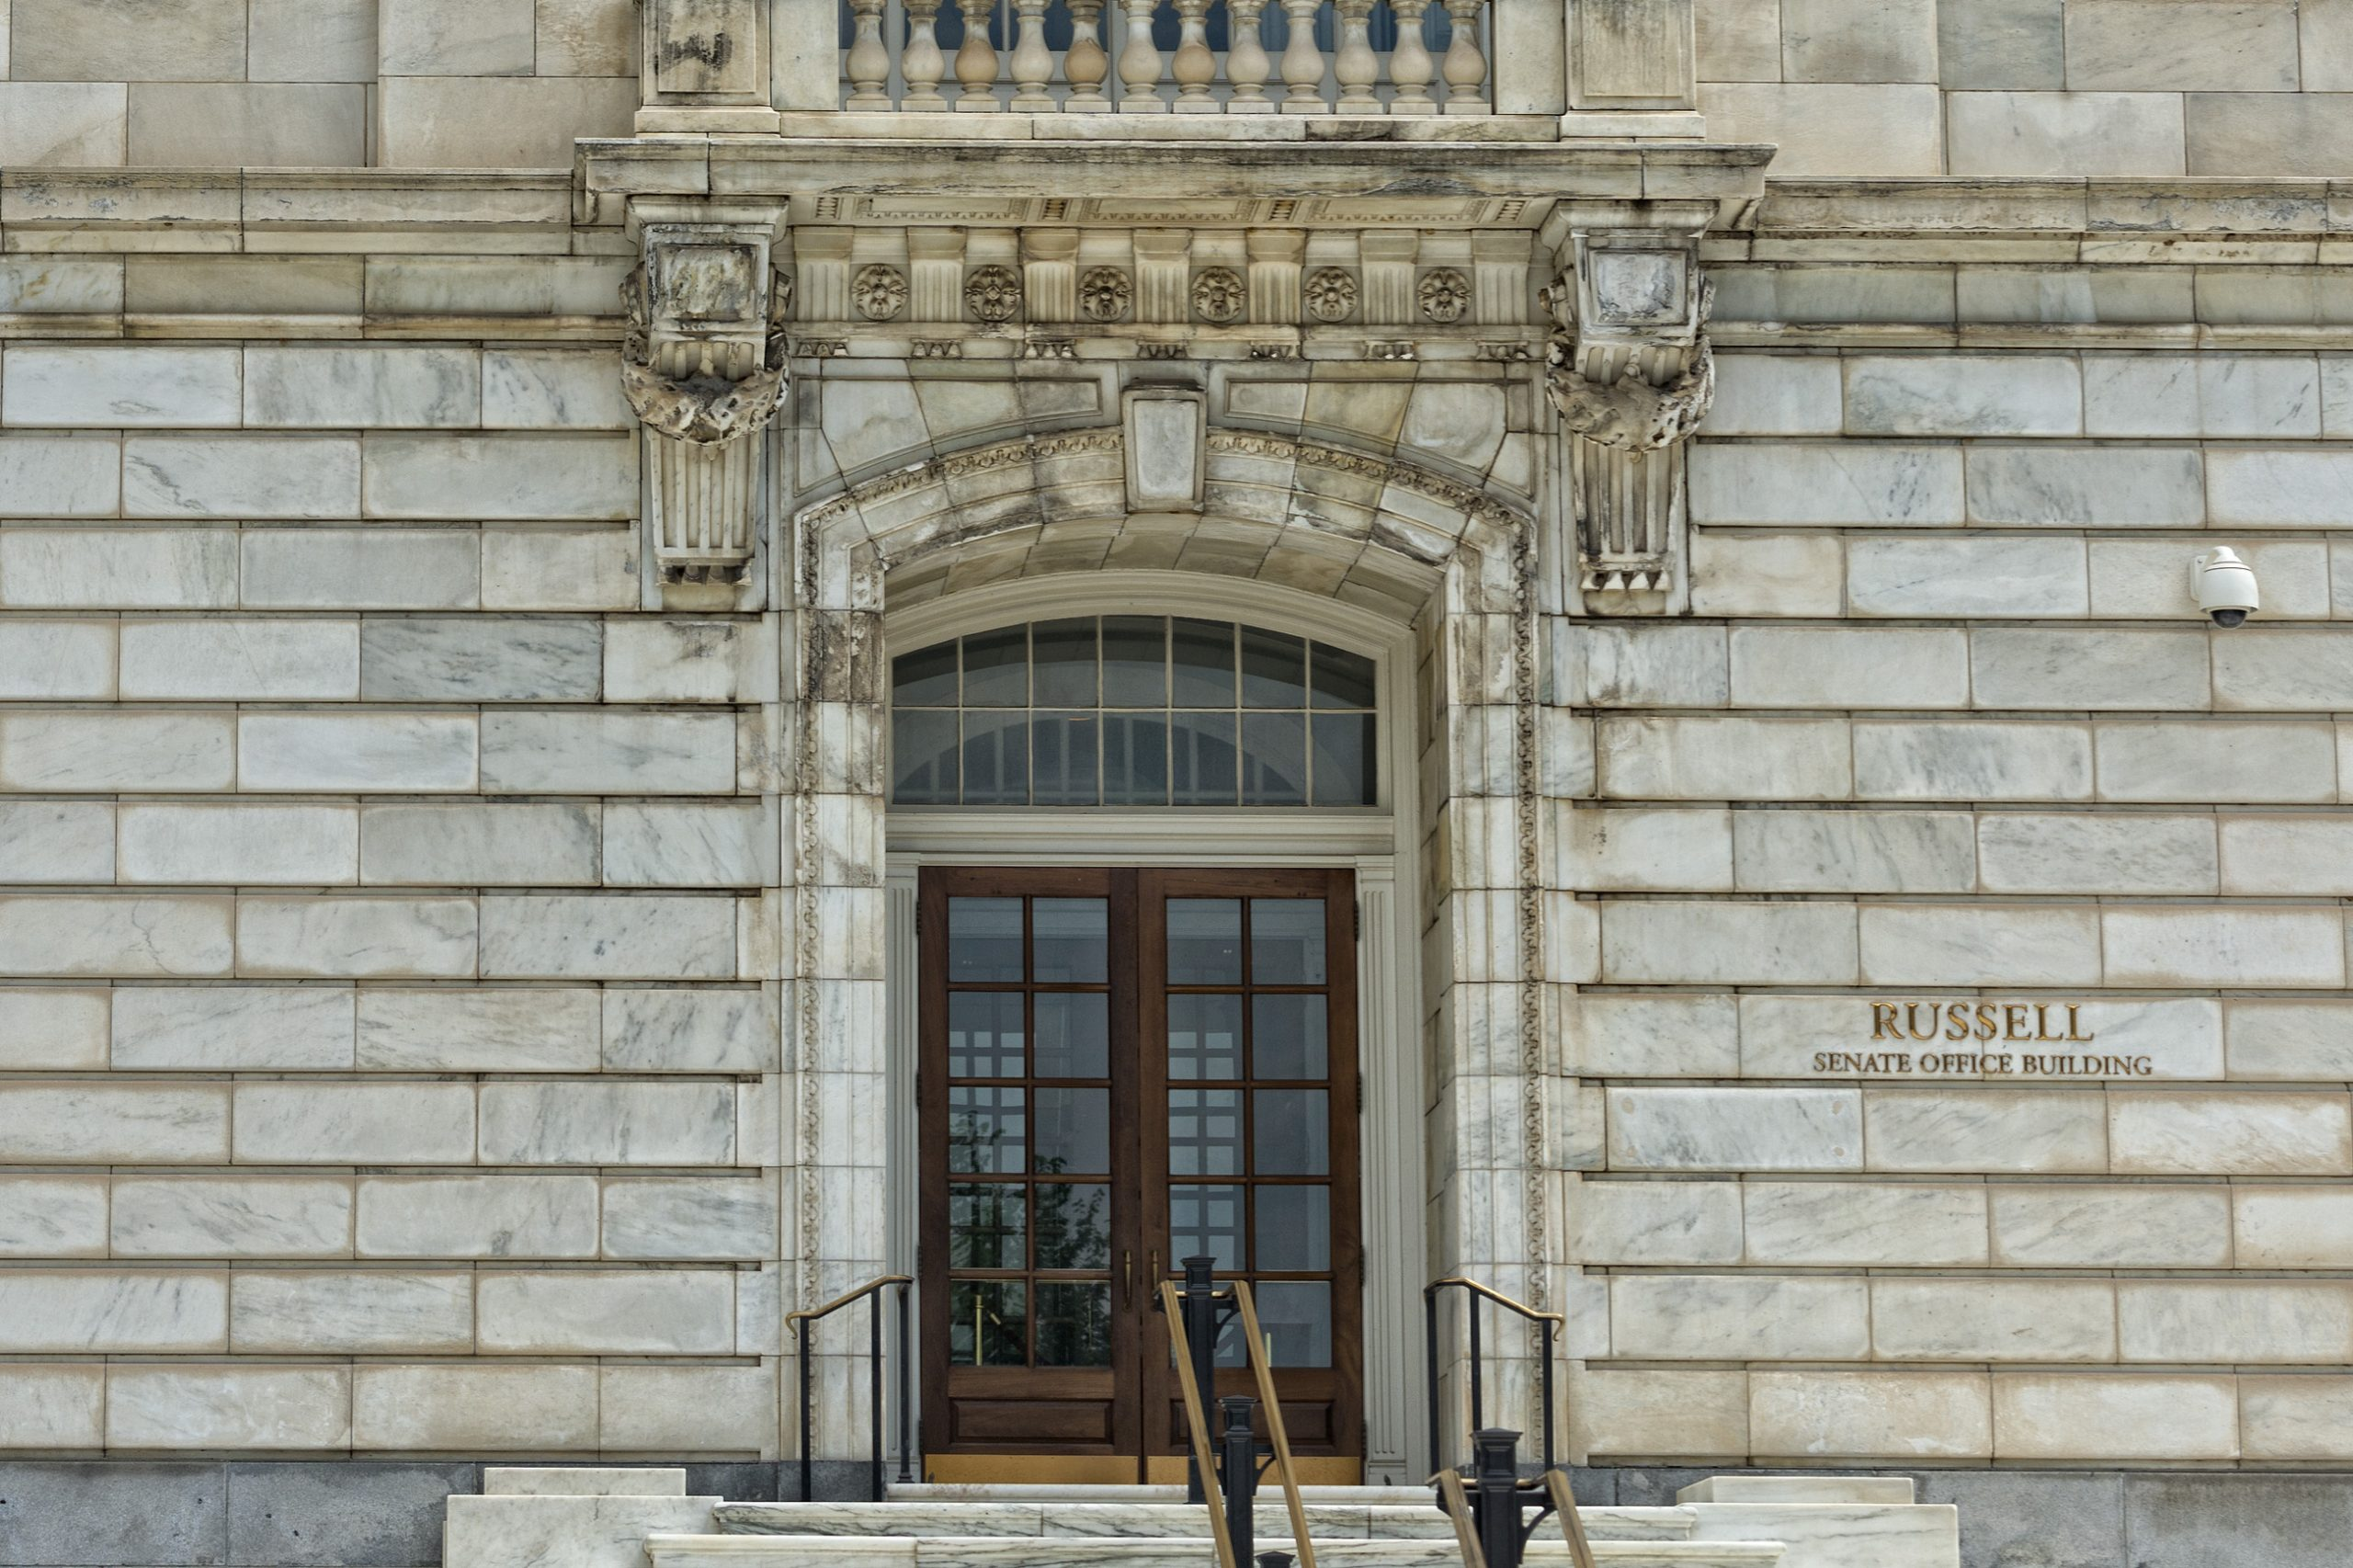 Entrance of the Russell Senate Office Building